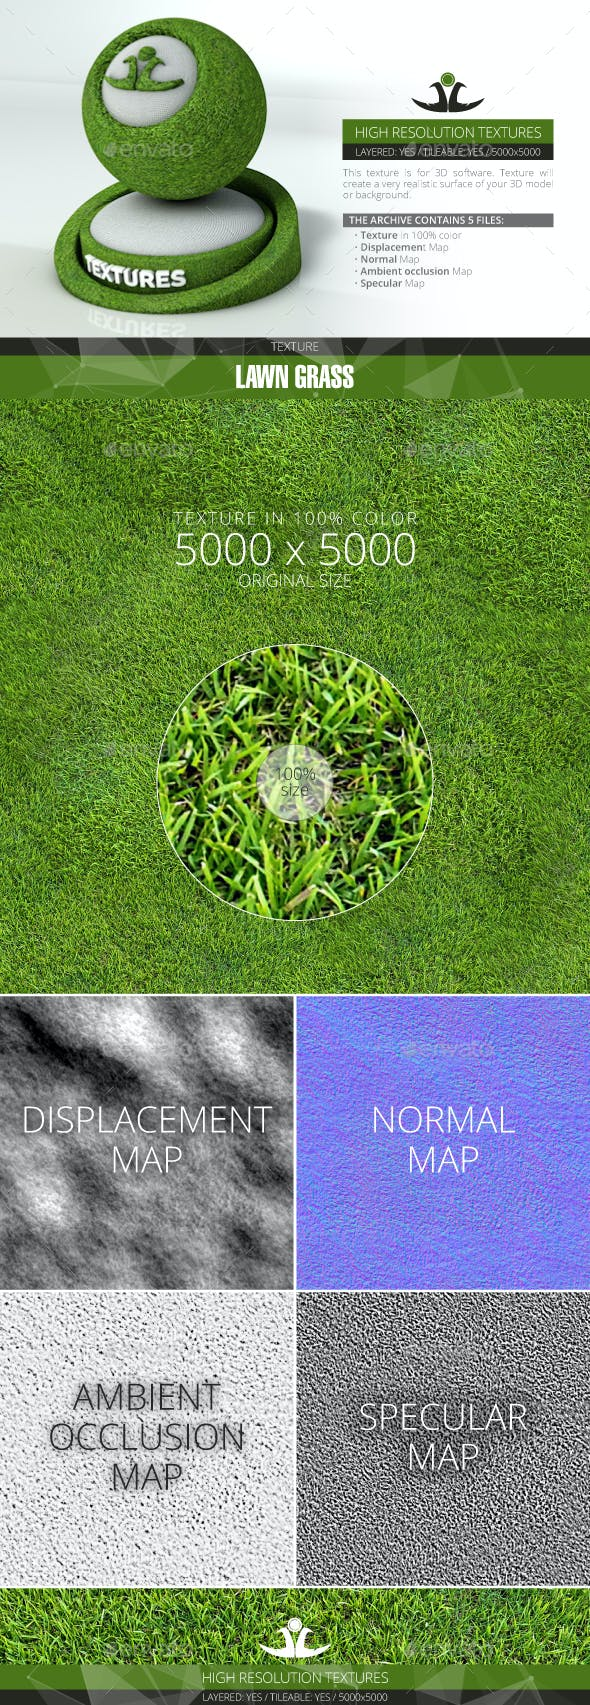 Lawn Grass 3 - 3DOcean Item for Sale